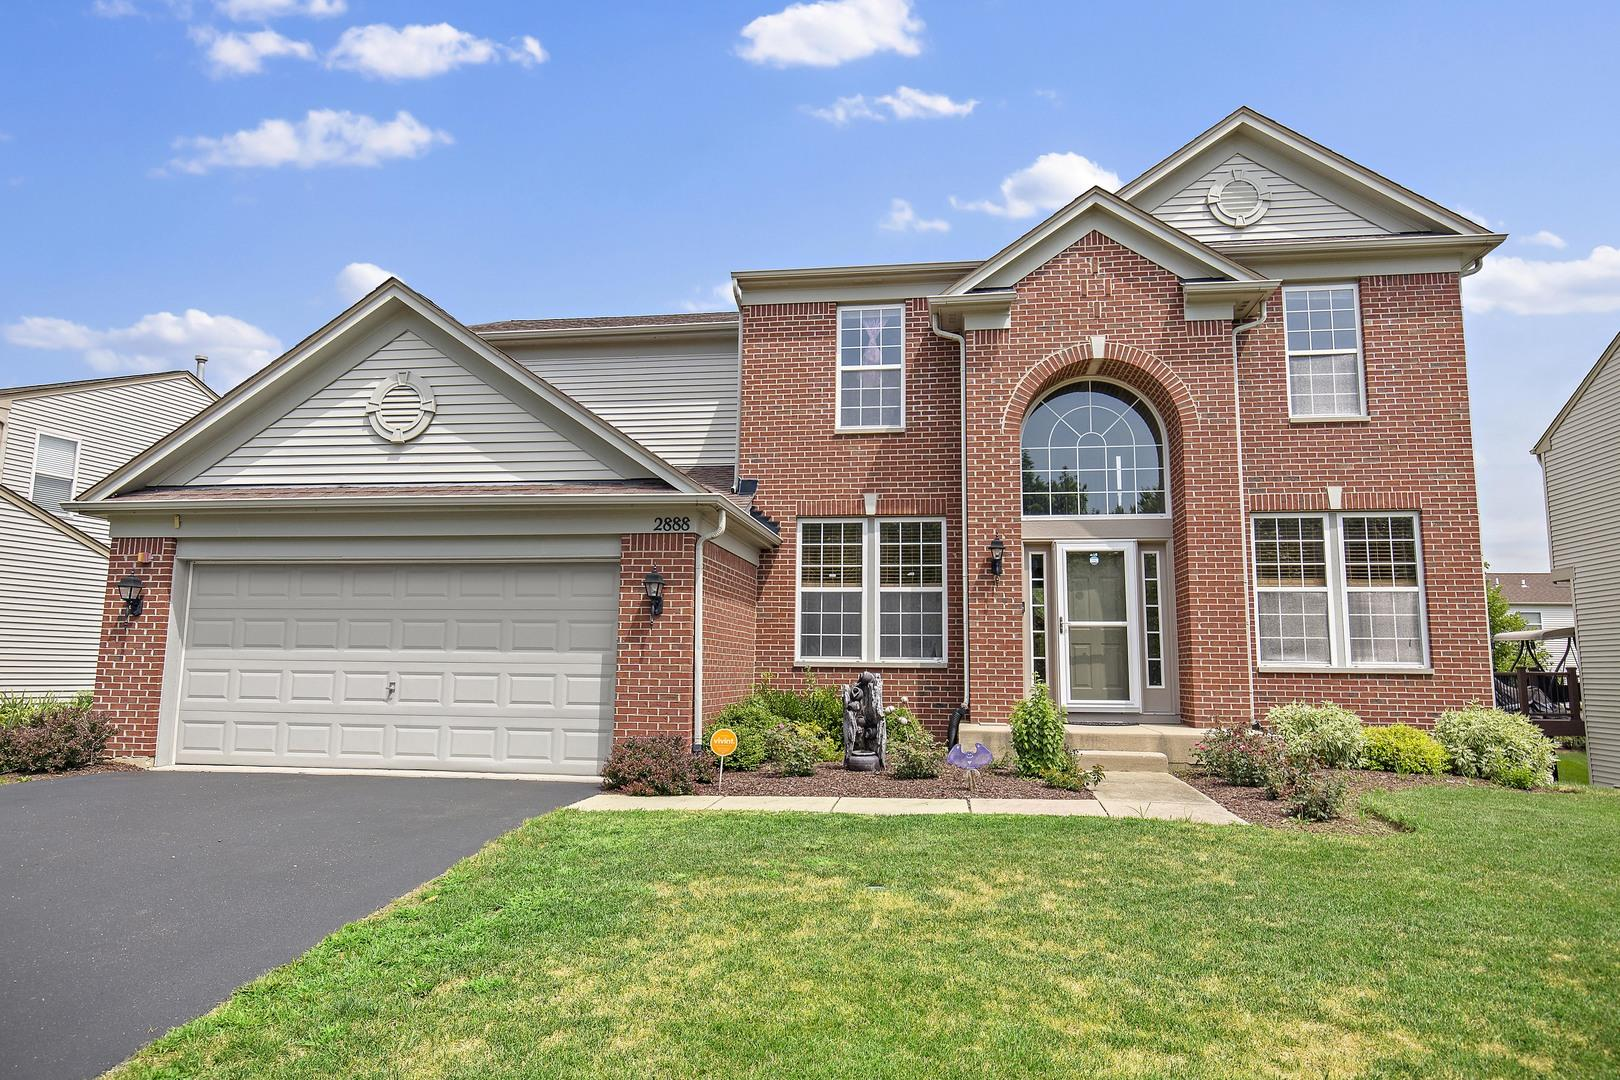 2888 DARTMOUTH Lane, West Dundee, IL 60118 - #: 10801351